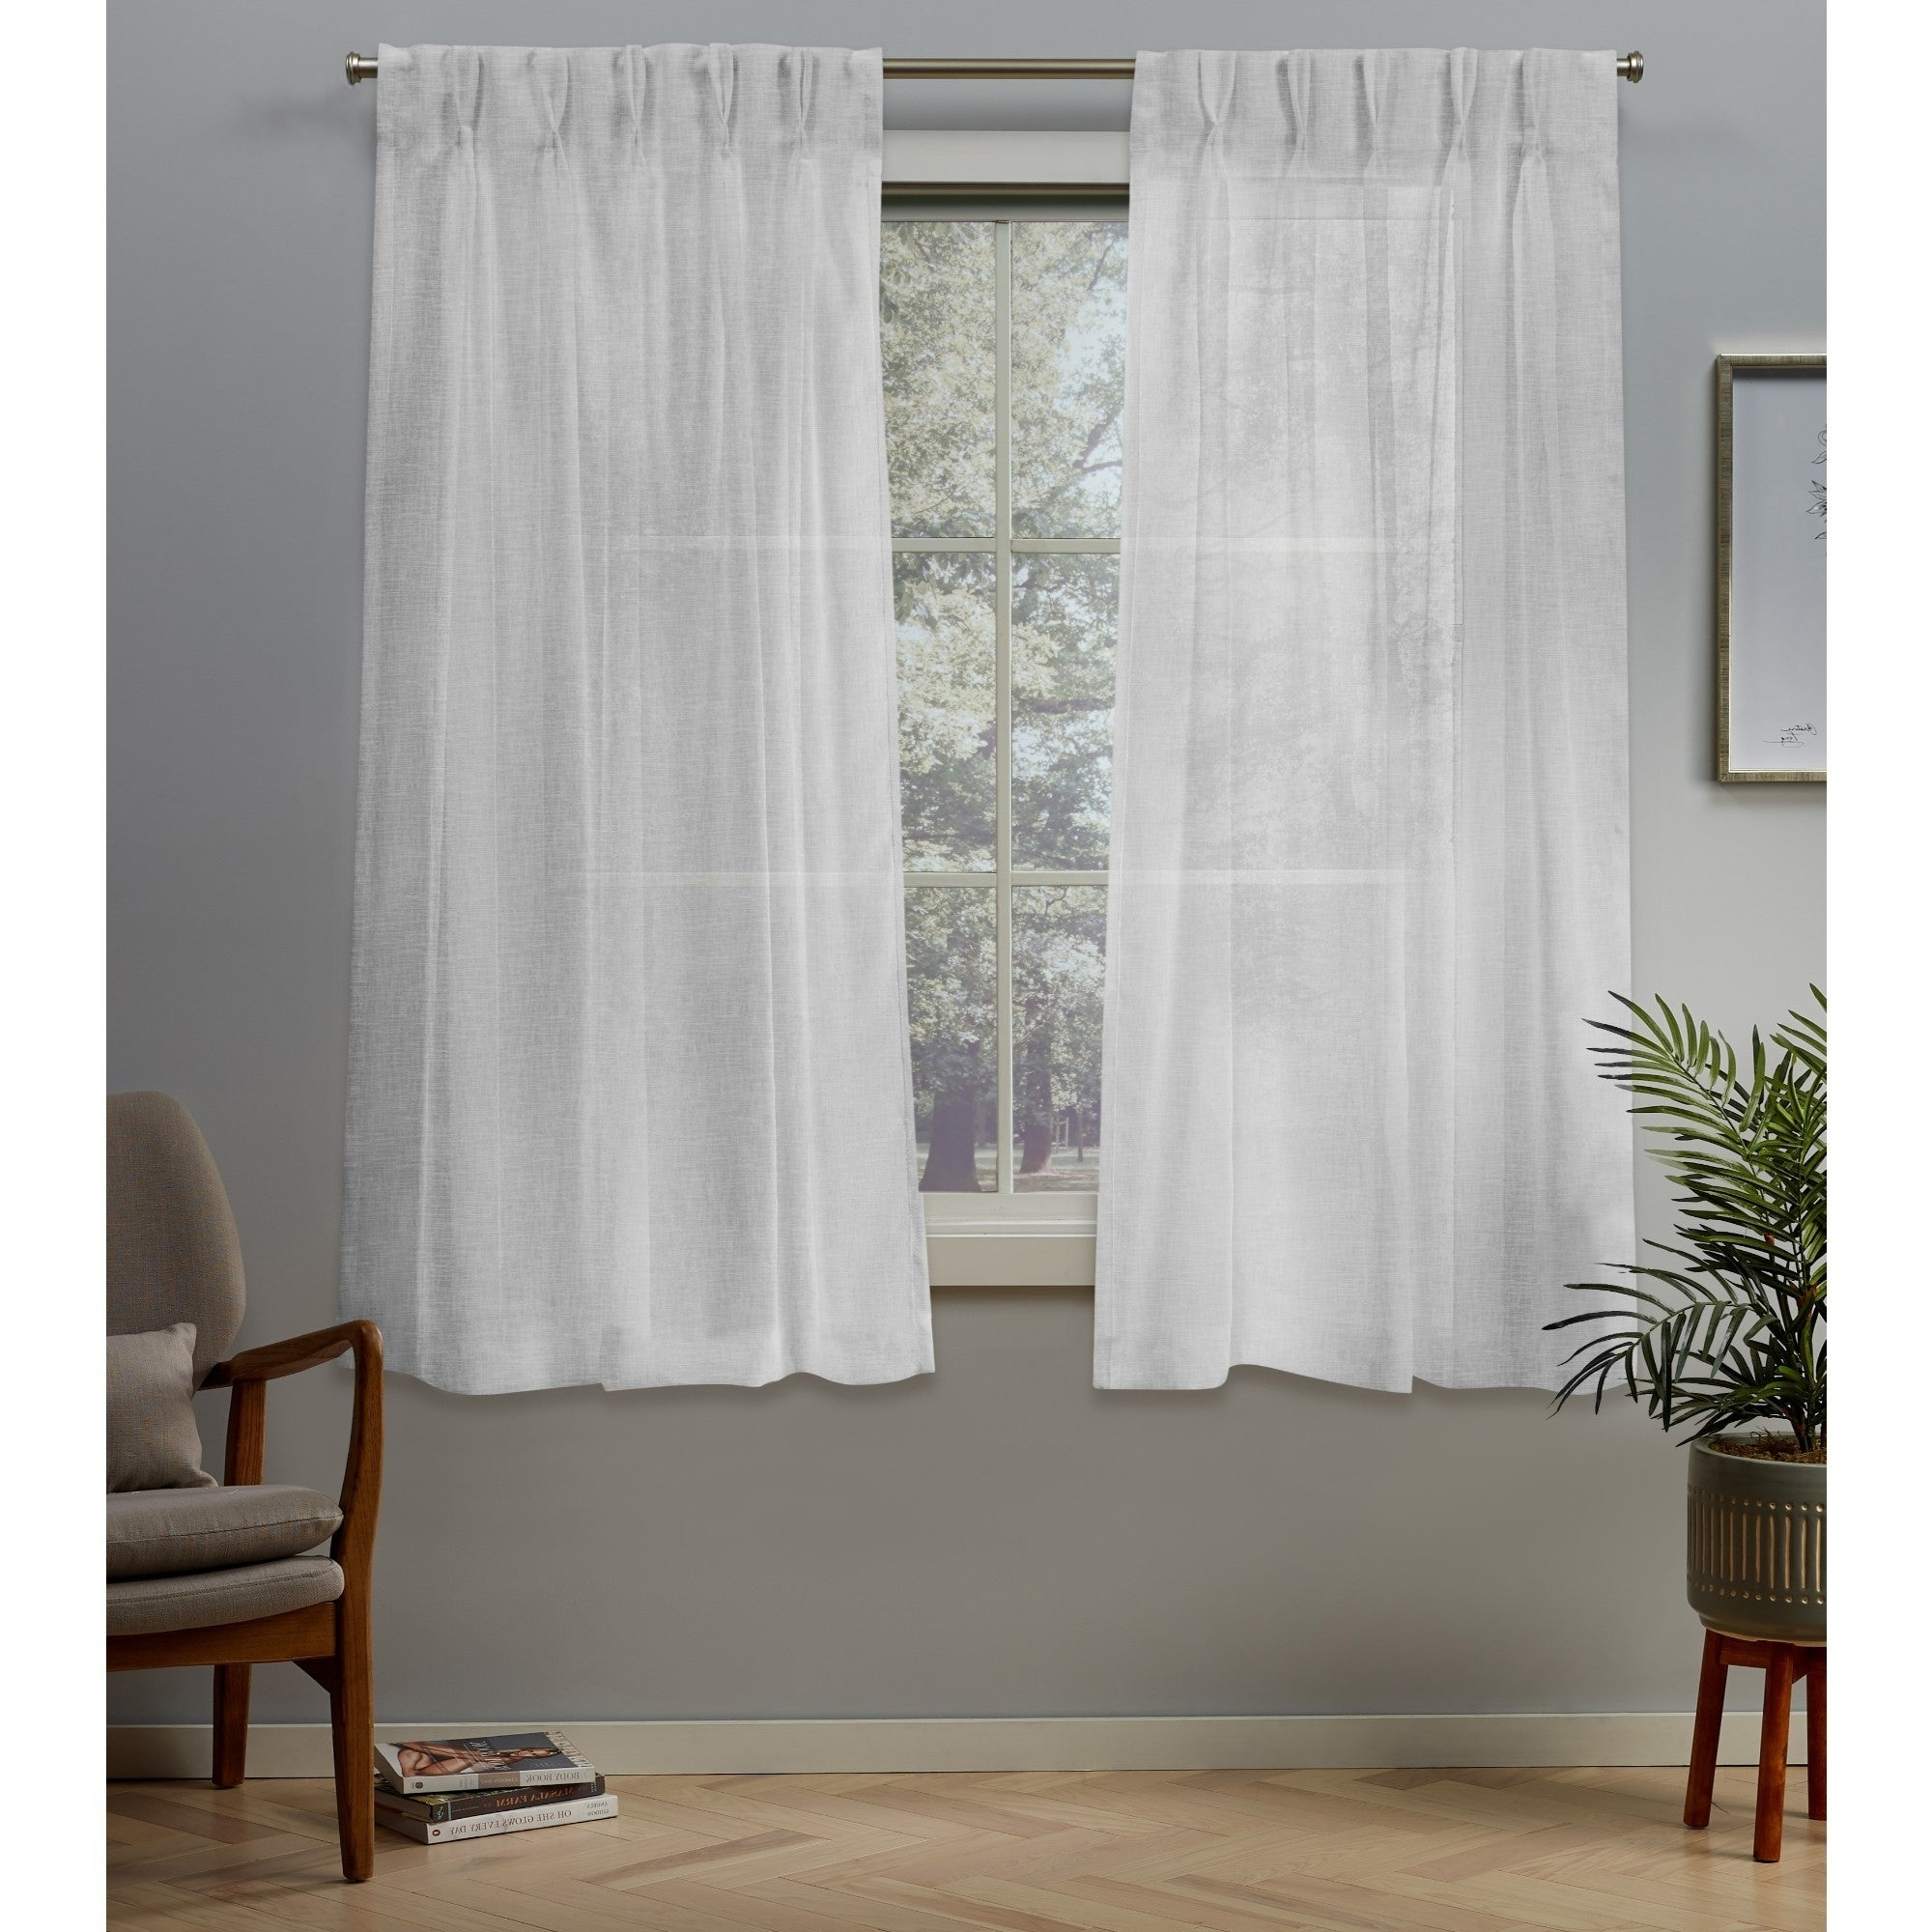 Most Popular Double Pinch Pleat Top Curtain Panel Pairs With Regard To Ati Home Belgian Jacquard Sheer Double Pinch Pleat Top Curtain Panel Pair (View 16 of 20)